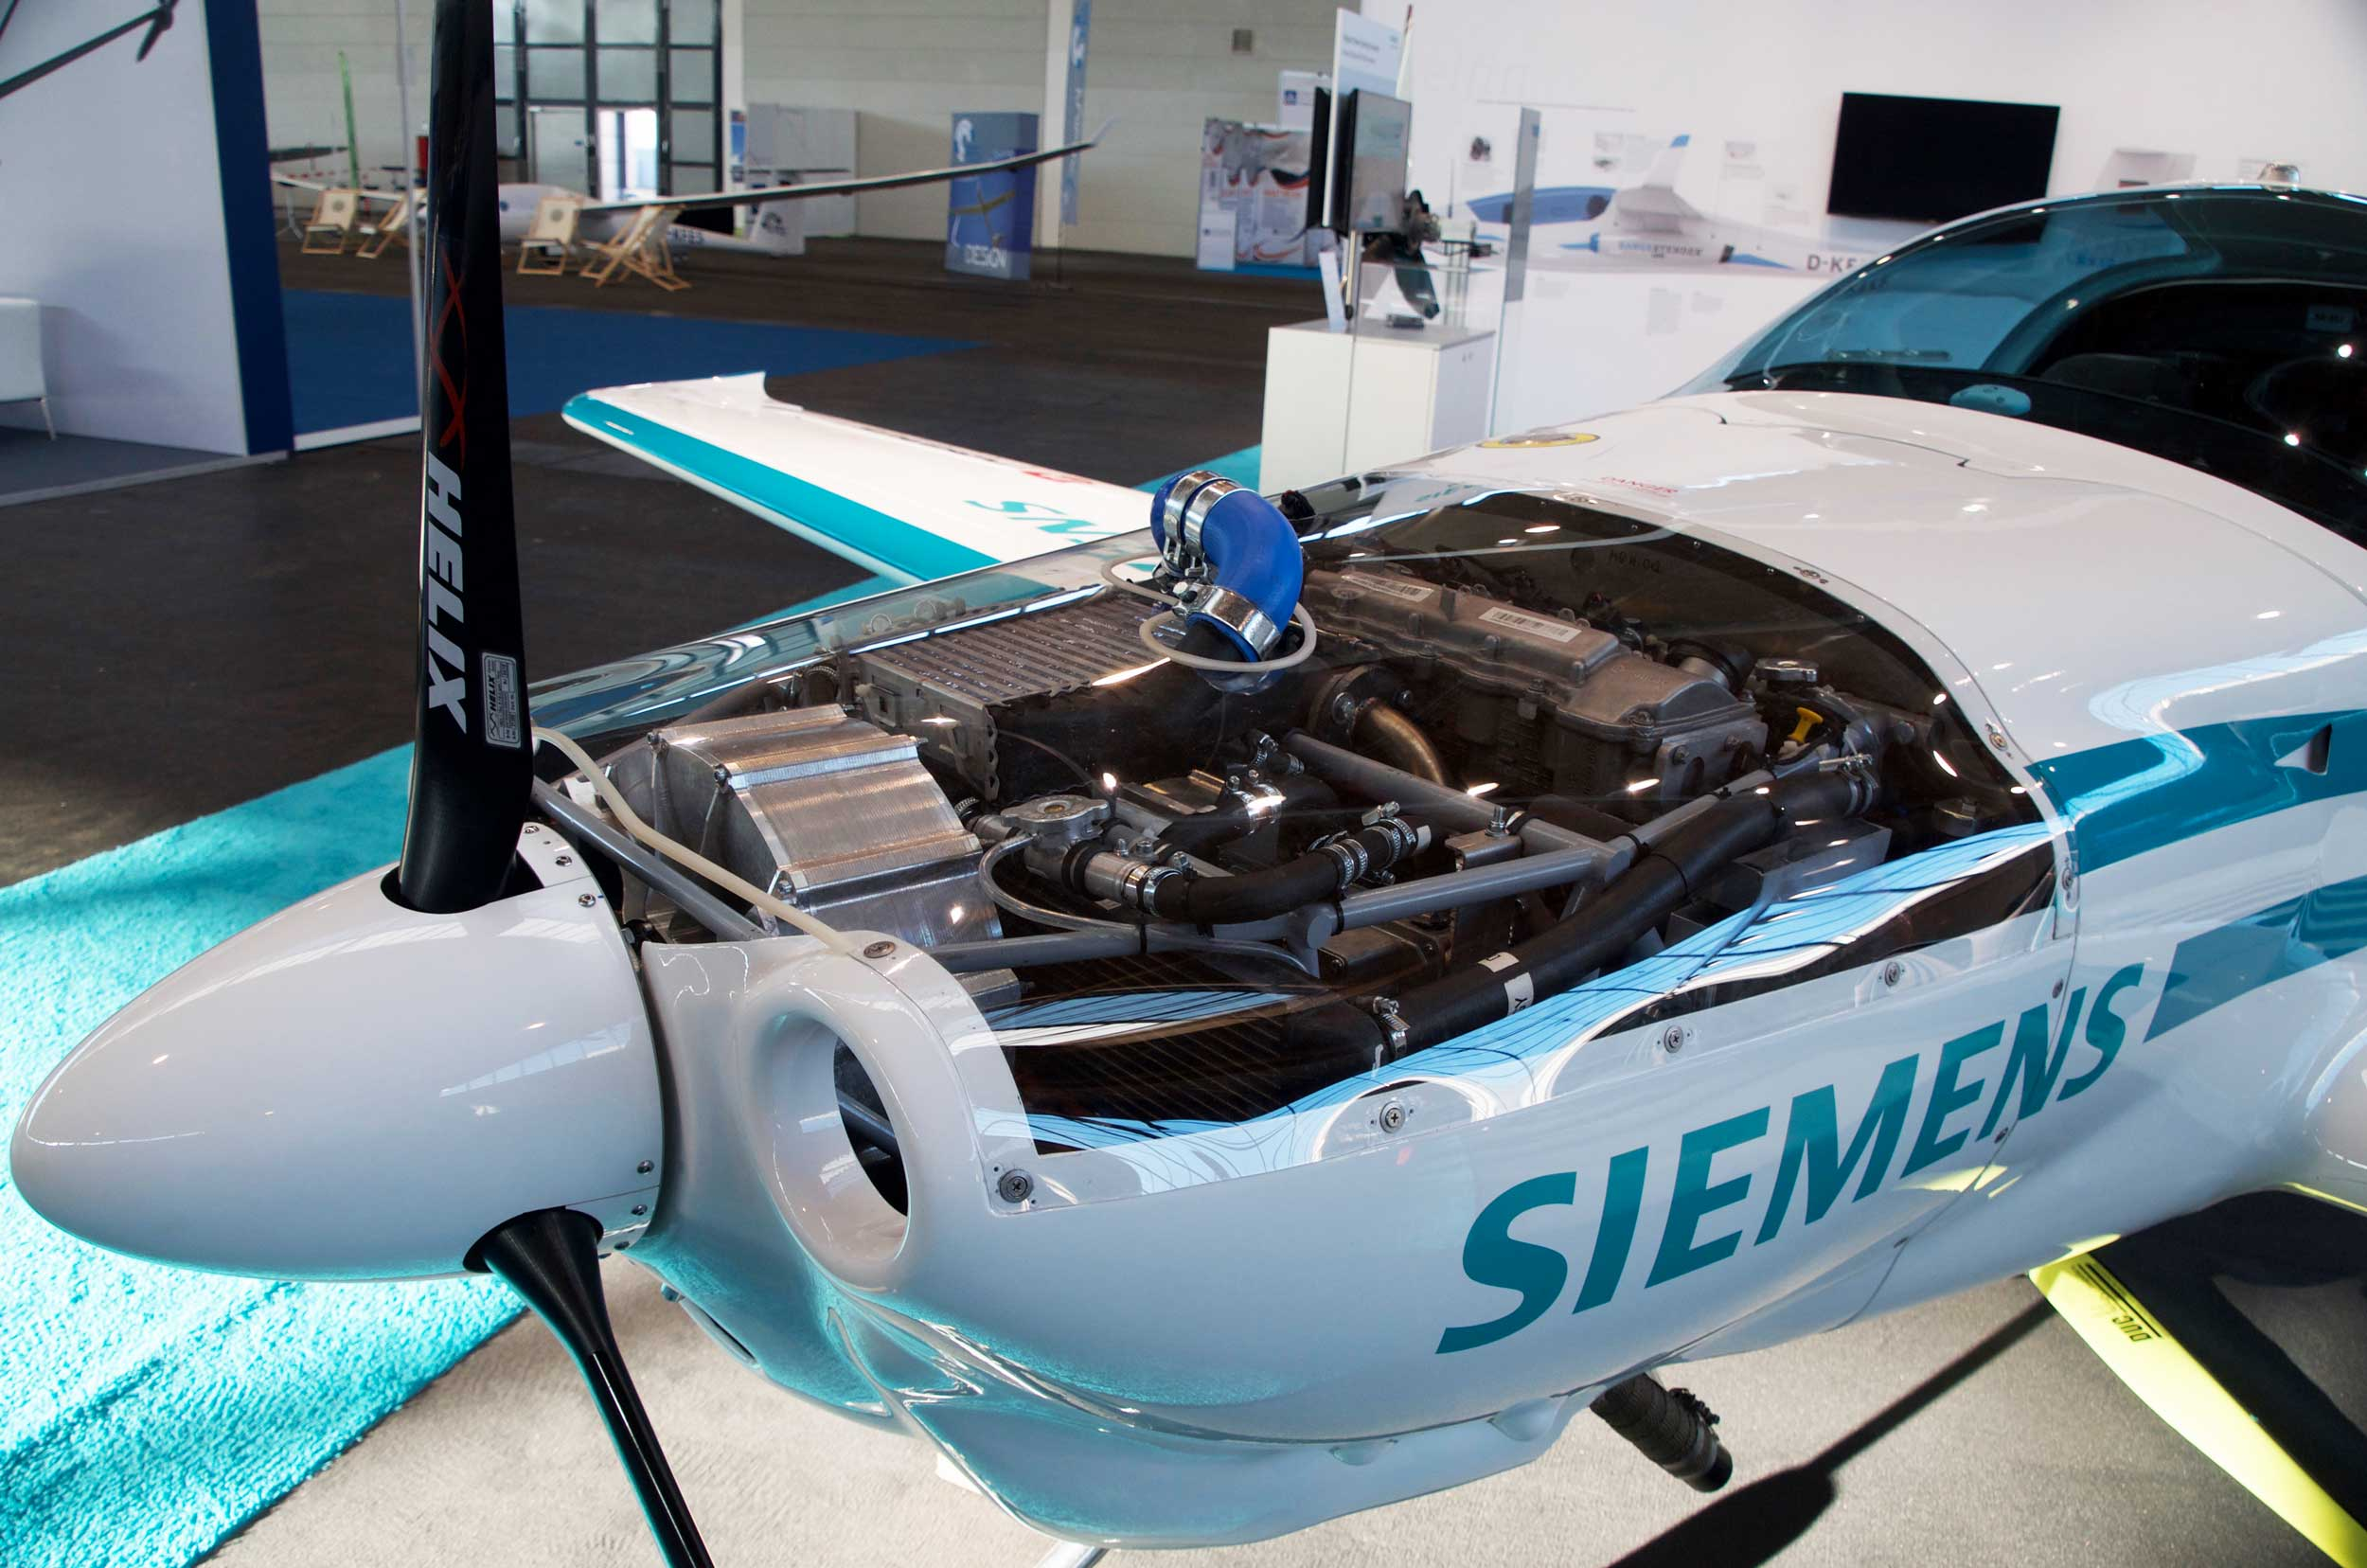 Siemens hybrid electric